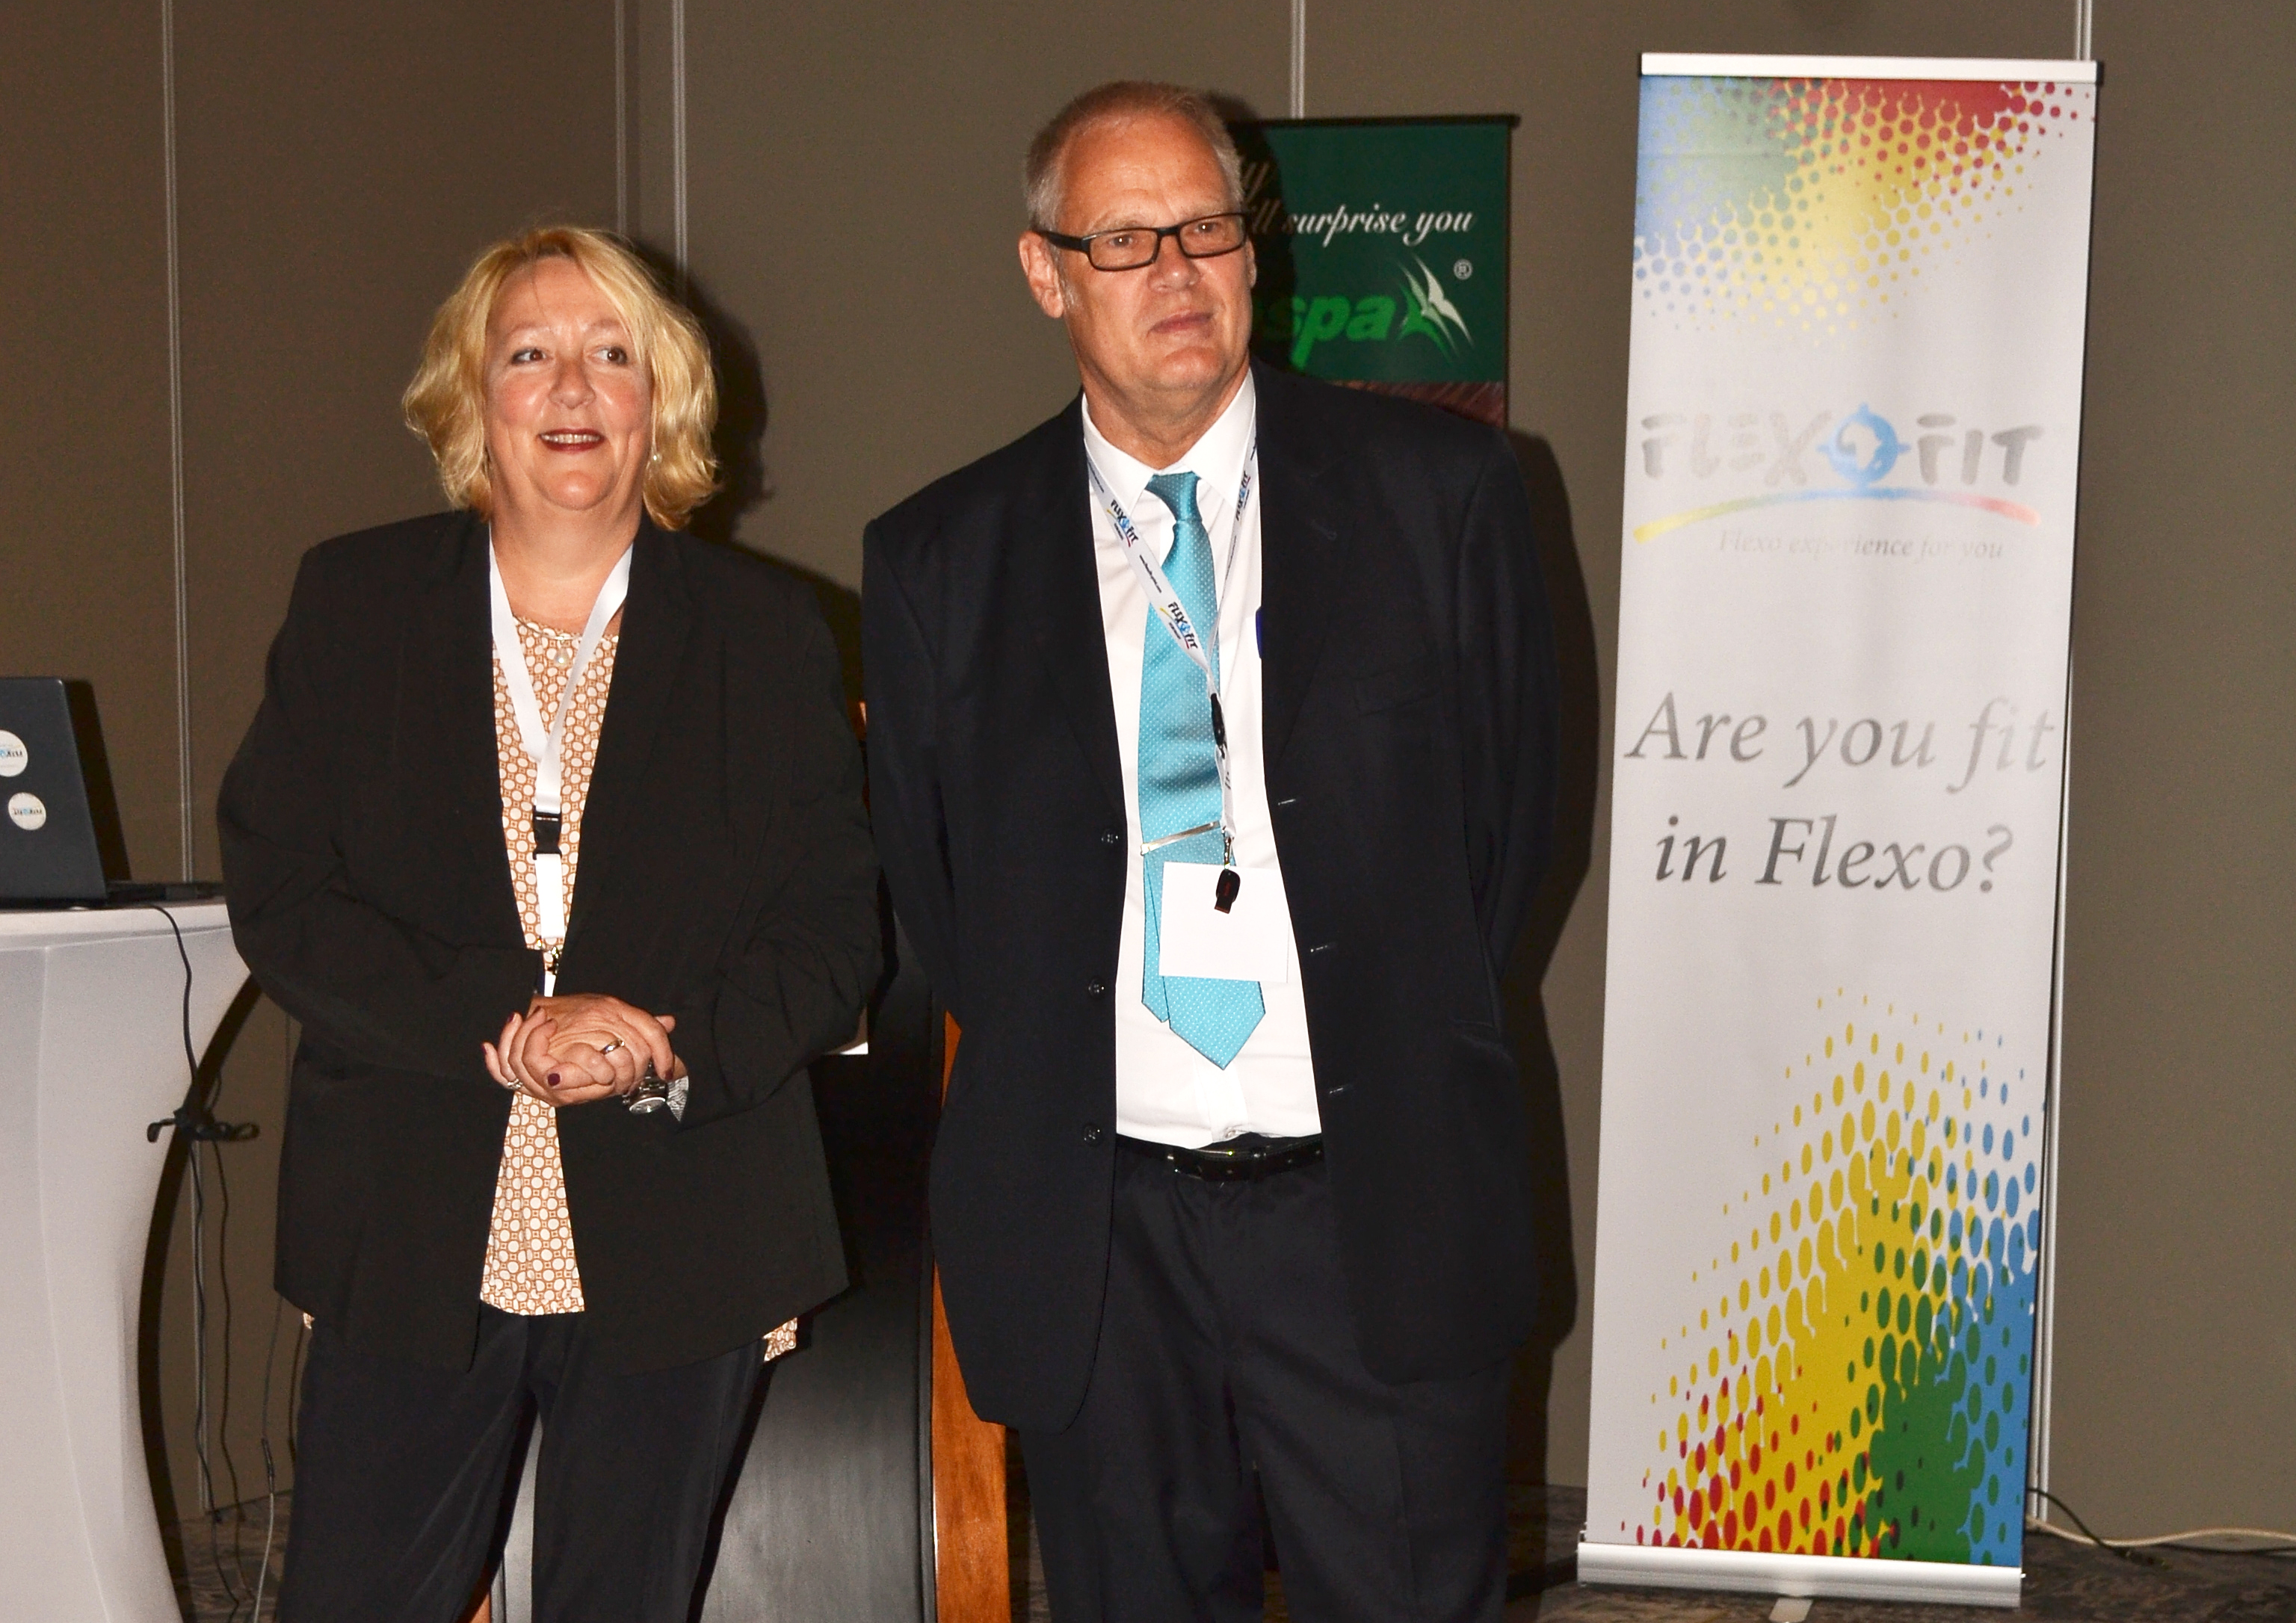 Karla Grey and-Peter Hormann Welcome Audience Introducing-Flexofit